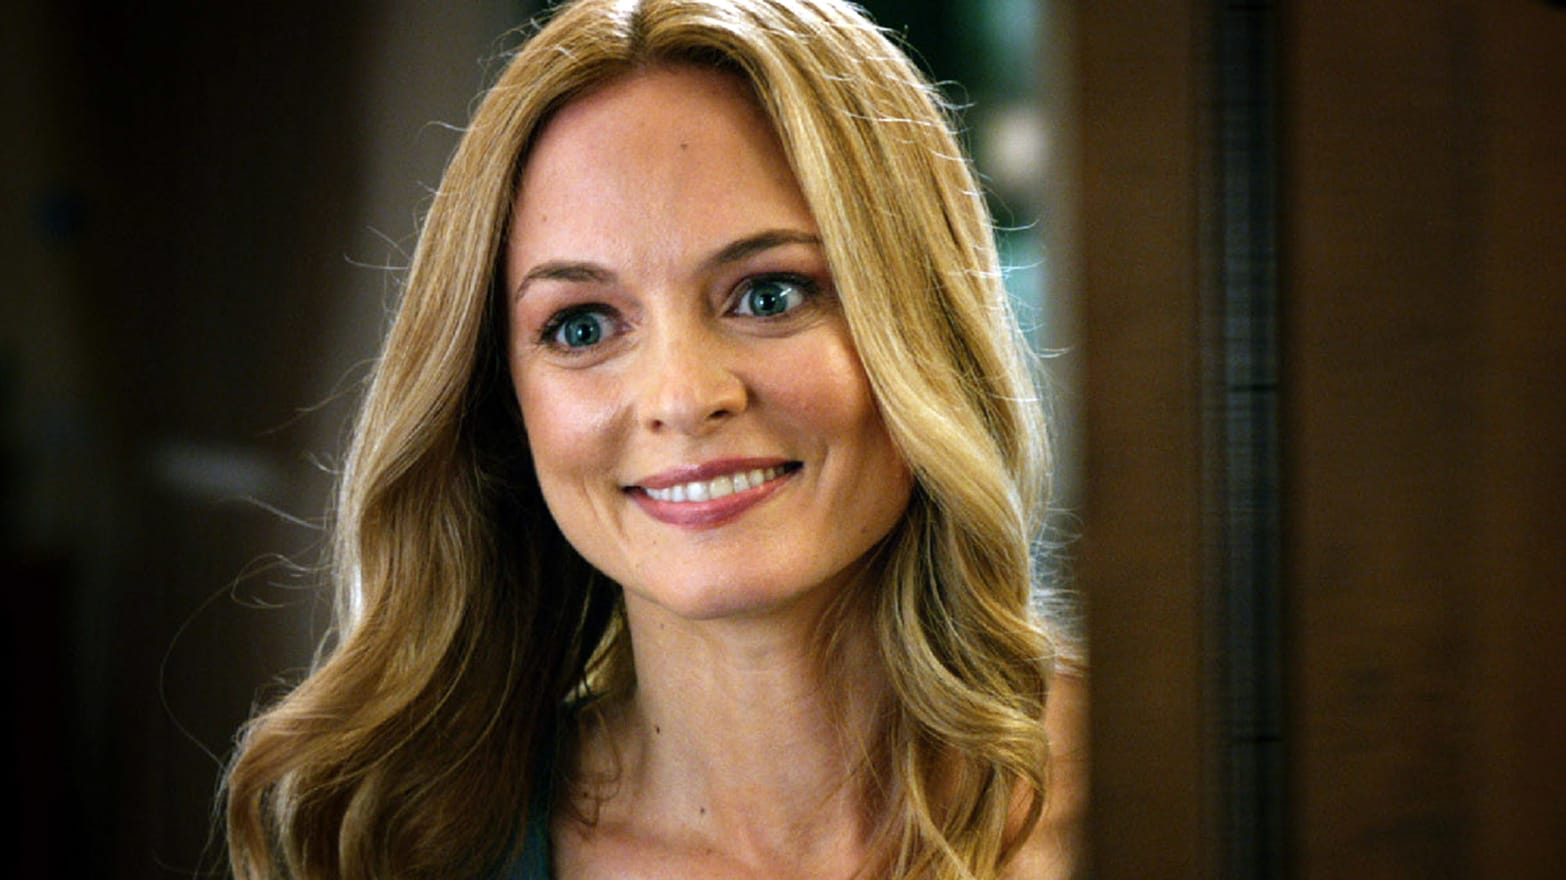 Heather Graham on 'The Hangover Part III,' Roles for Women, and More